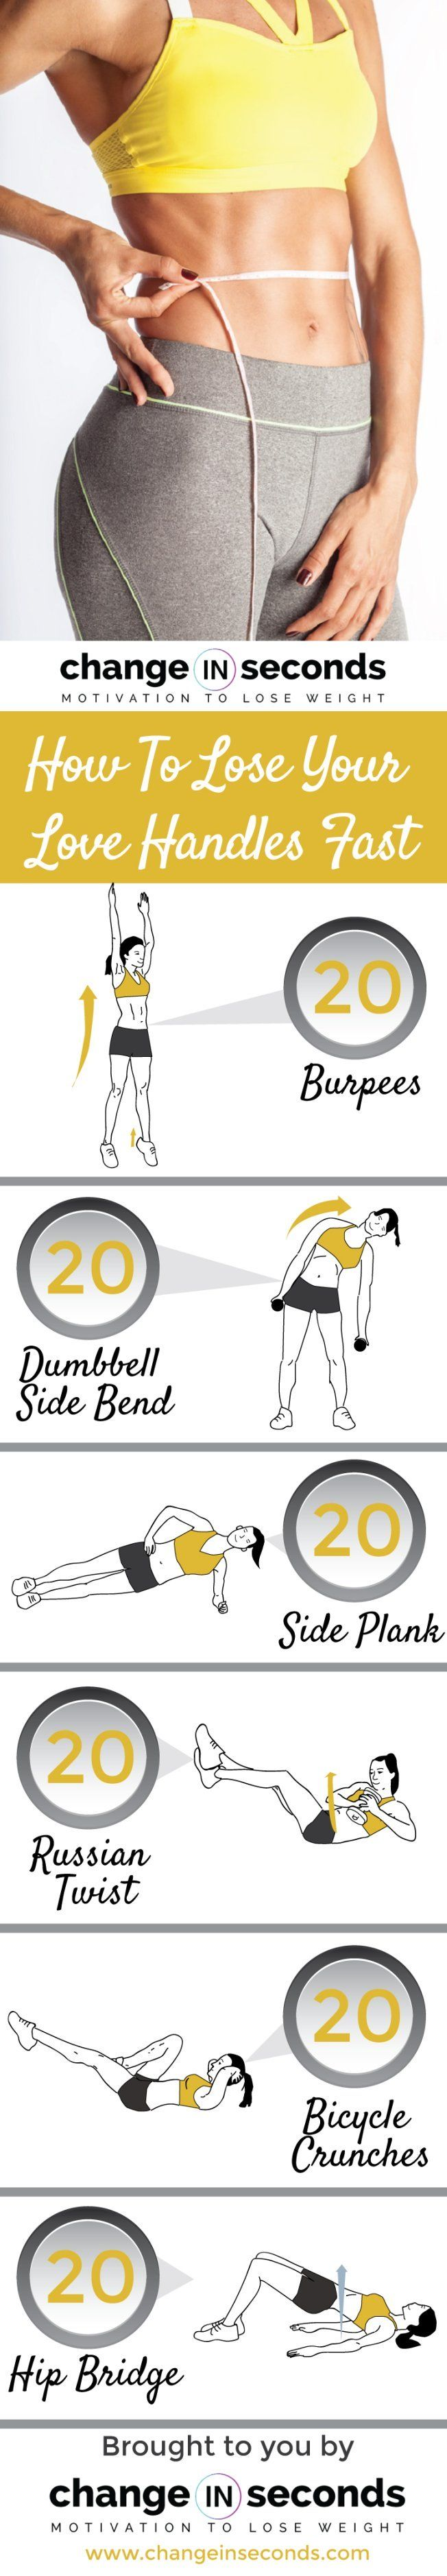 How To Lose Your Love Handles Fast